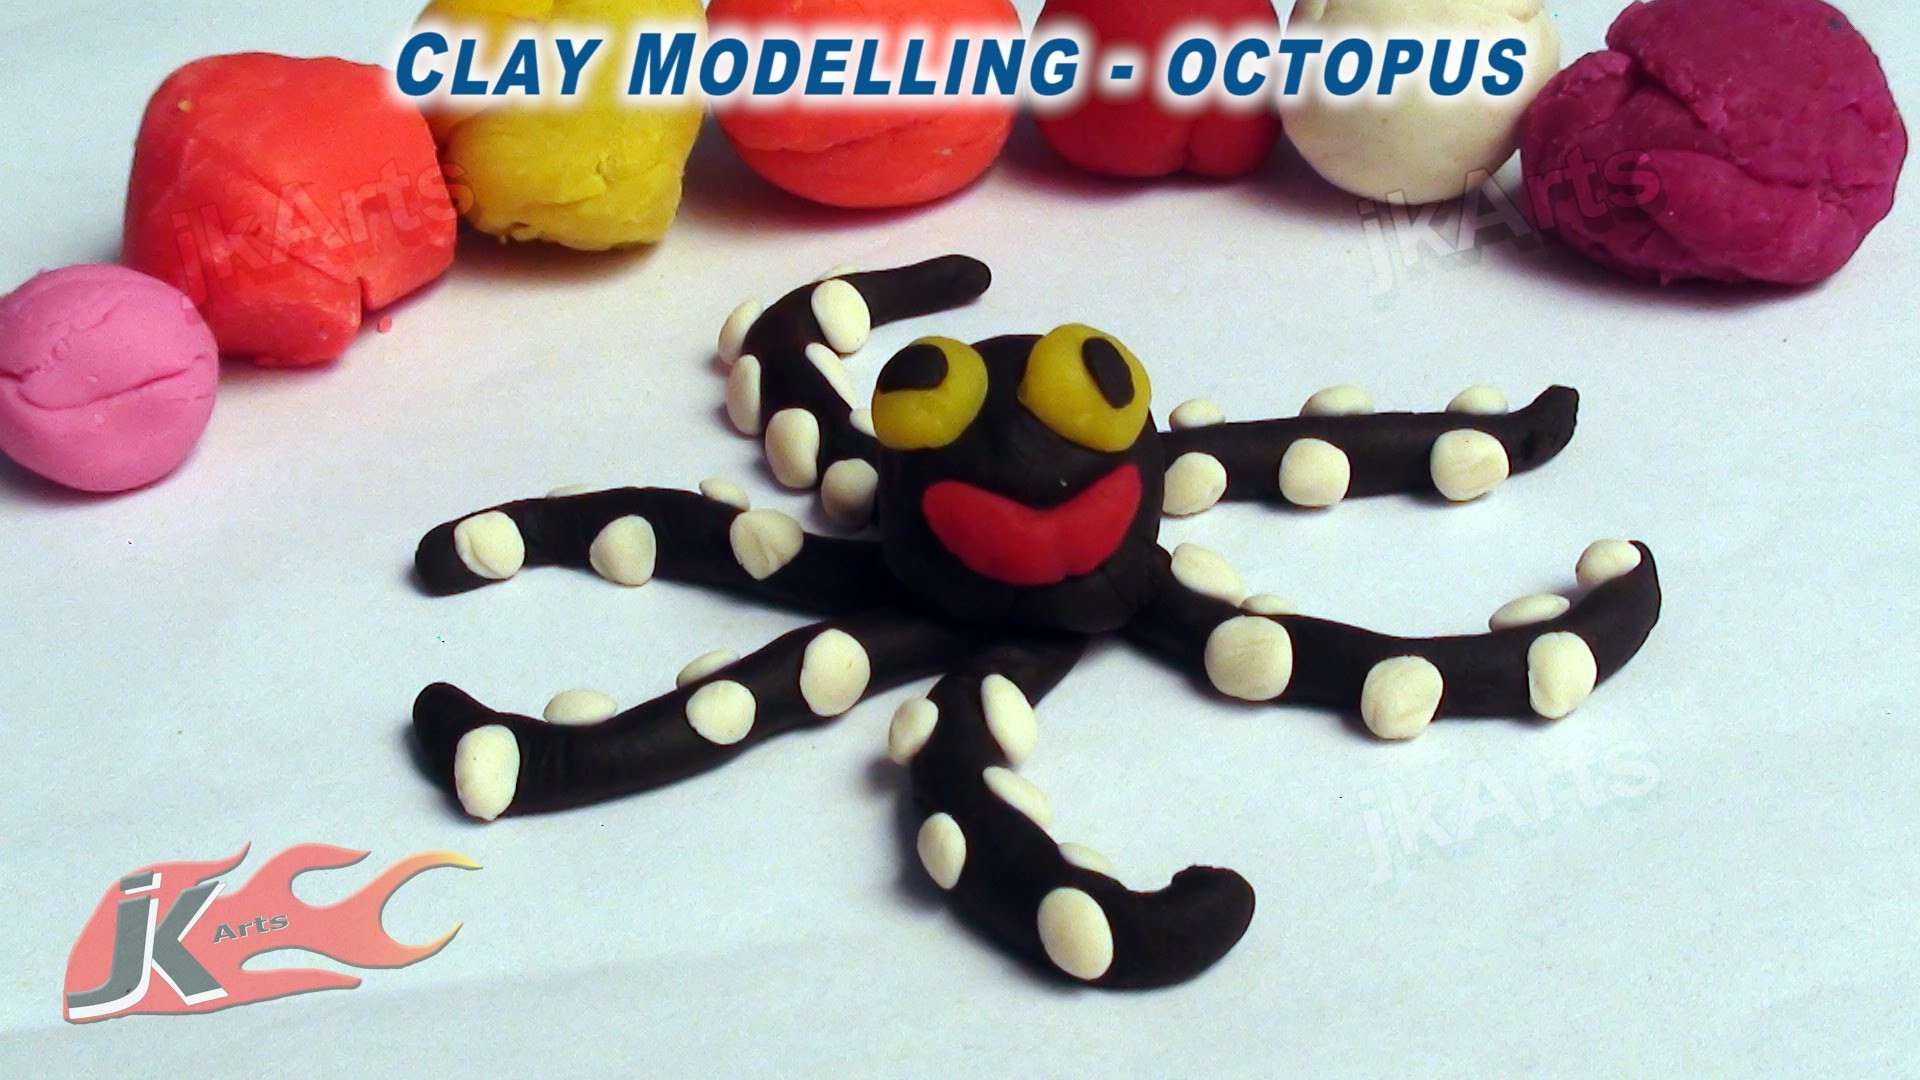 003 Clay Modelling - Learn to make Octopus - JK Easy Craft 003